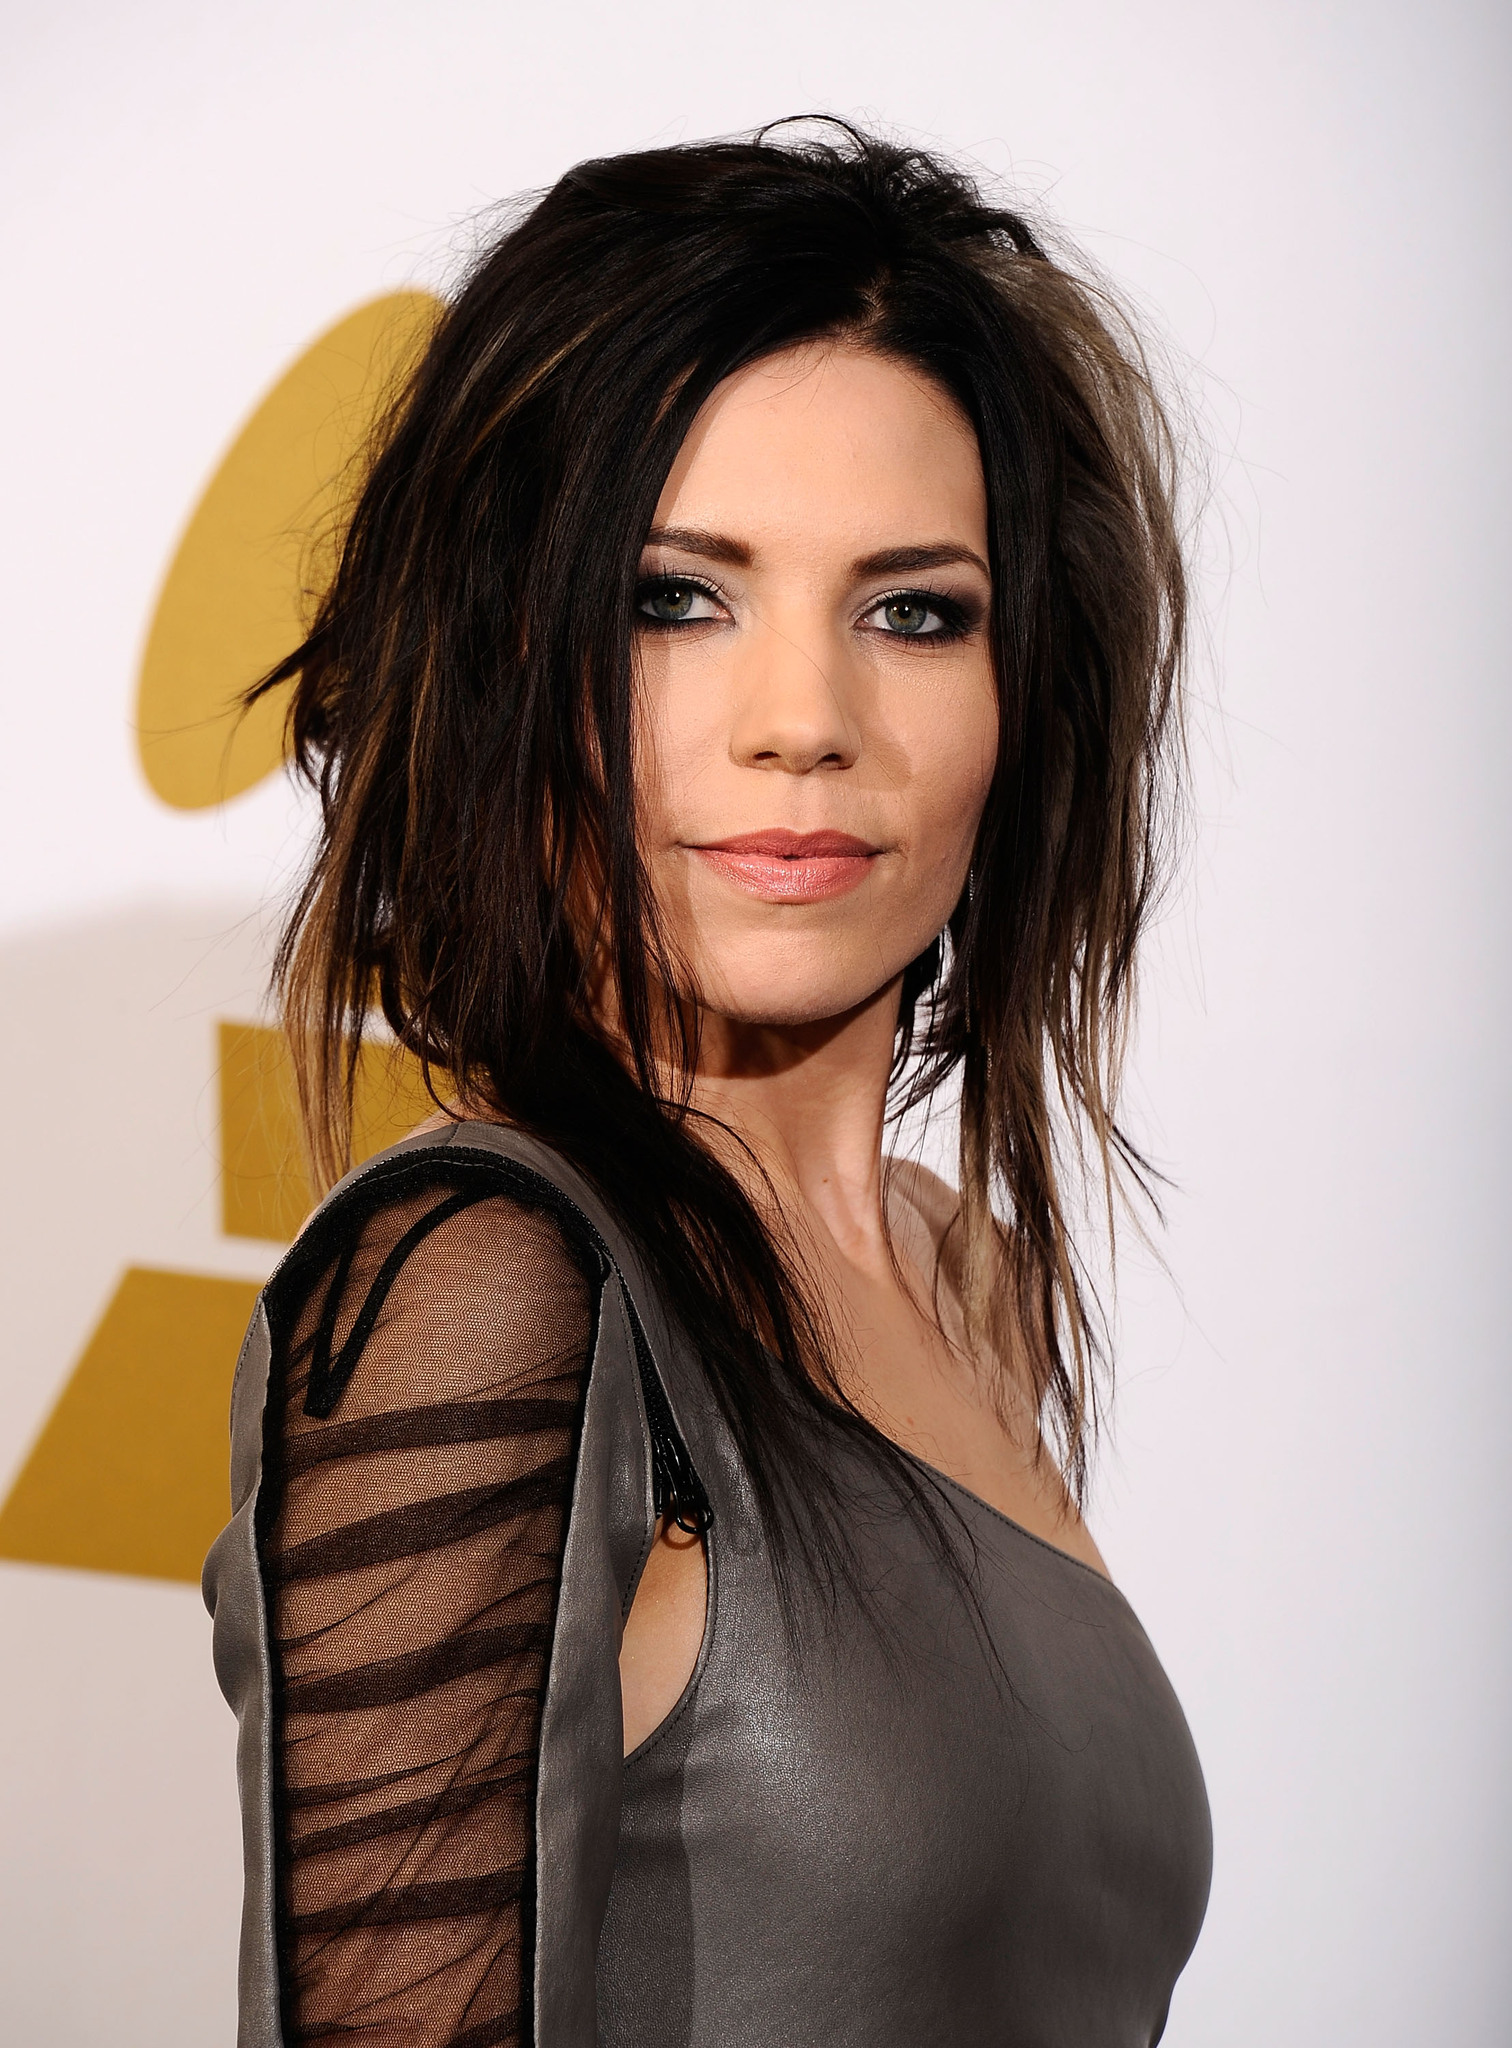 Words skylar grey song download